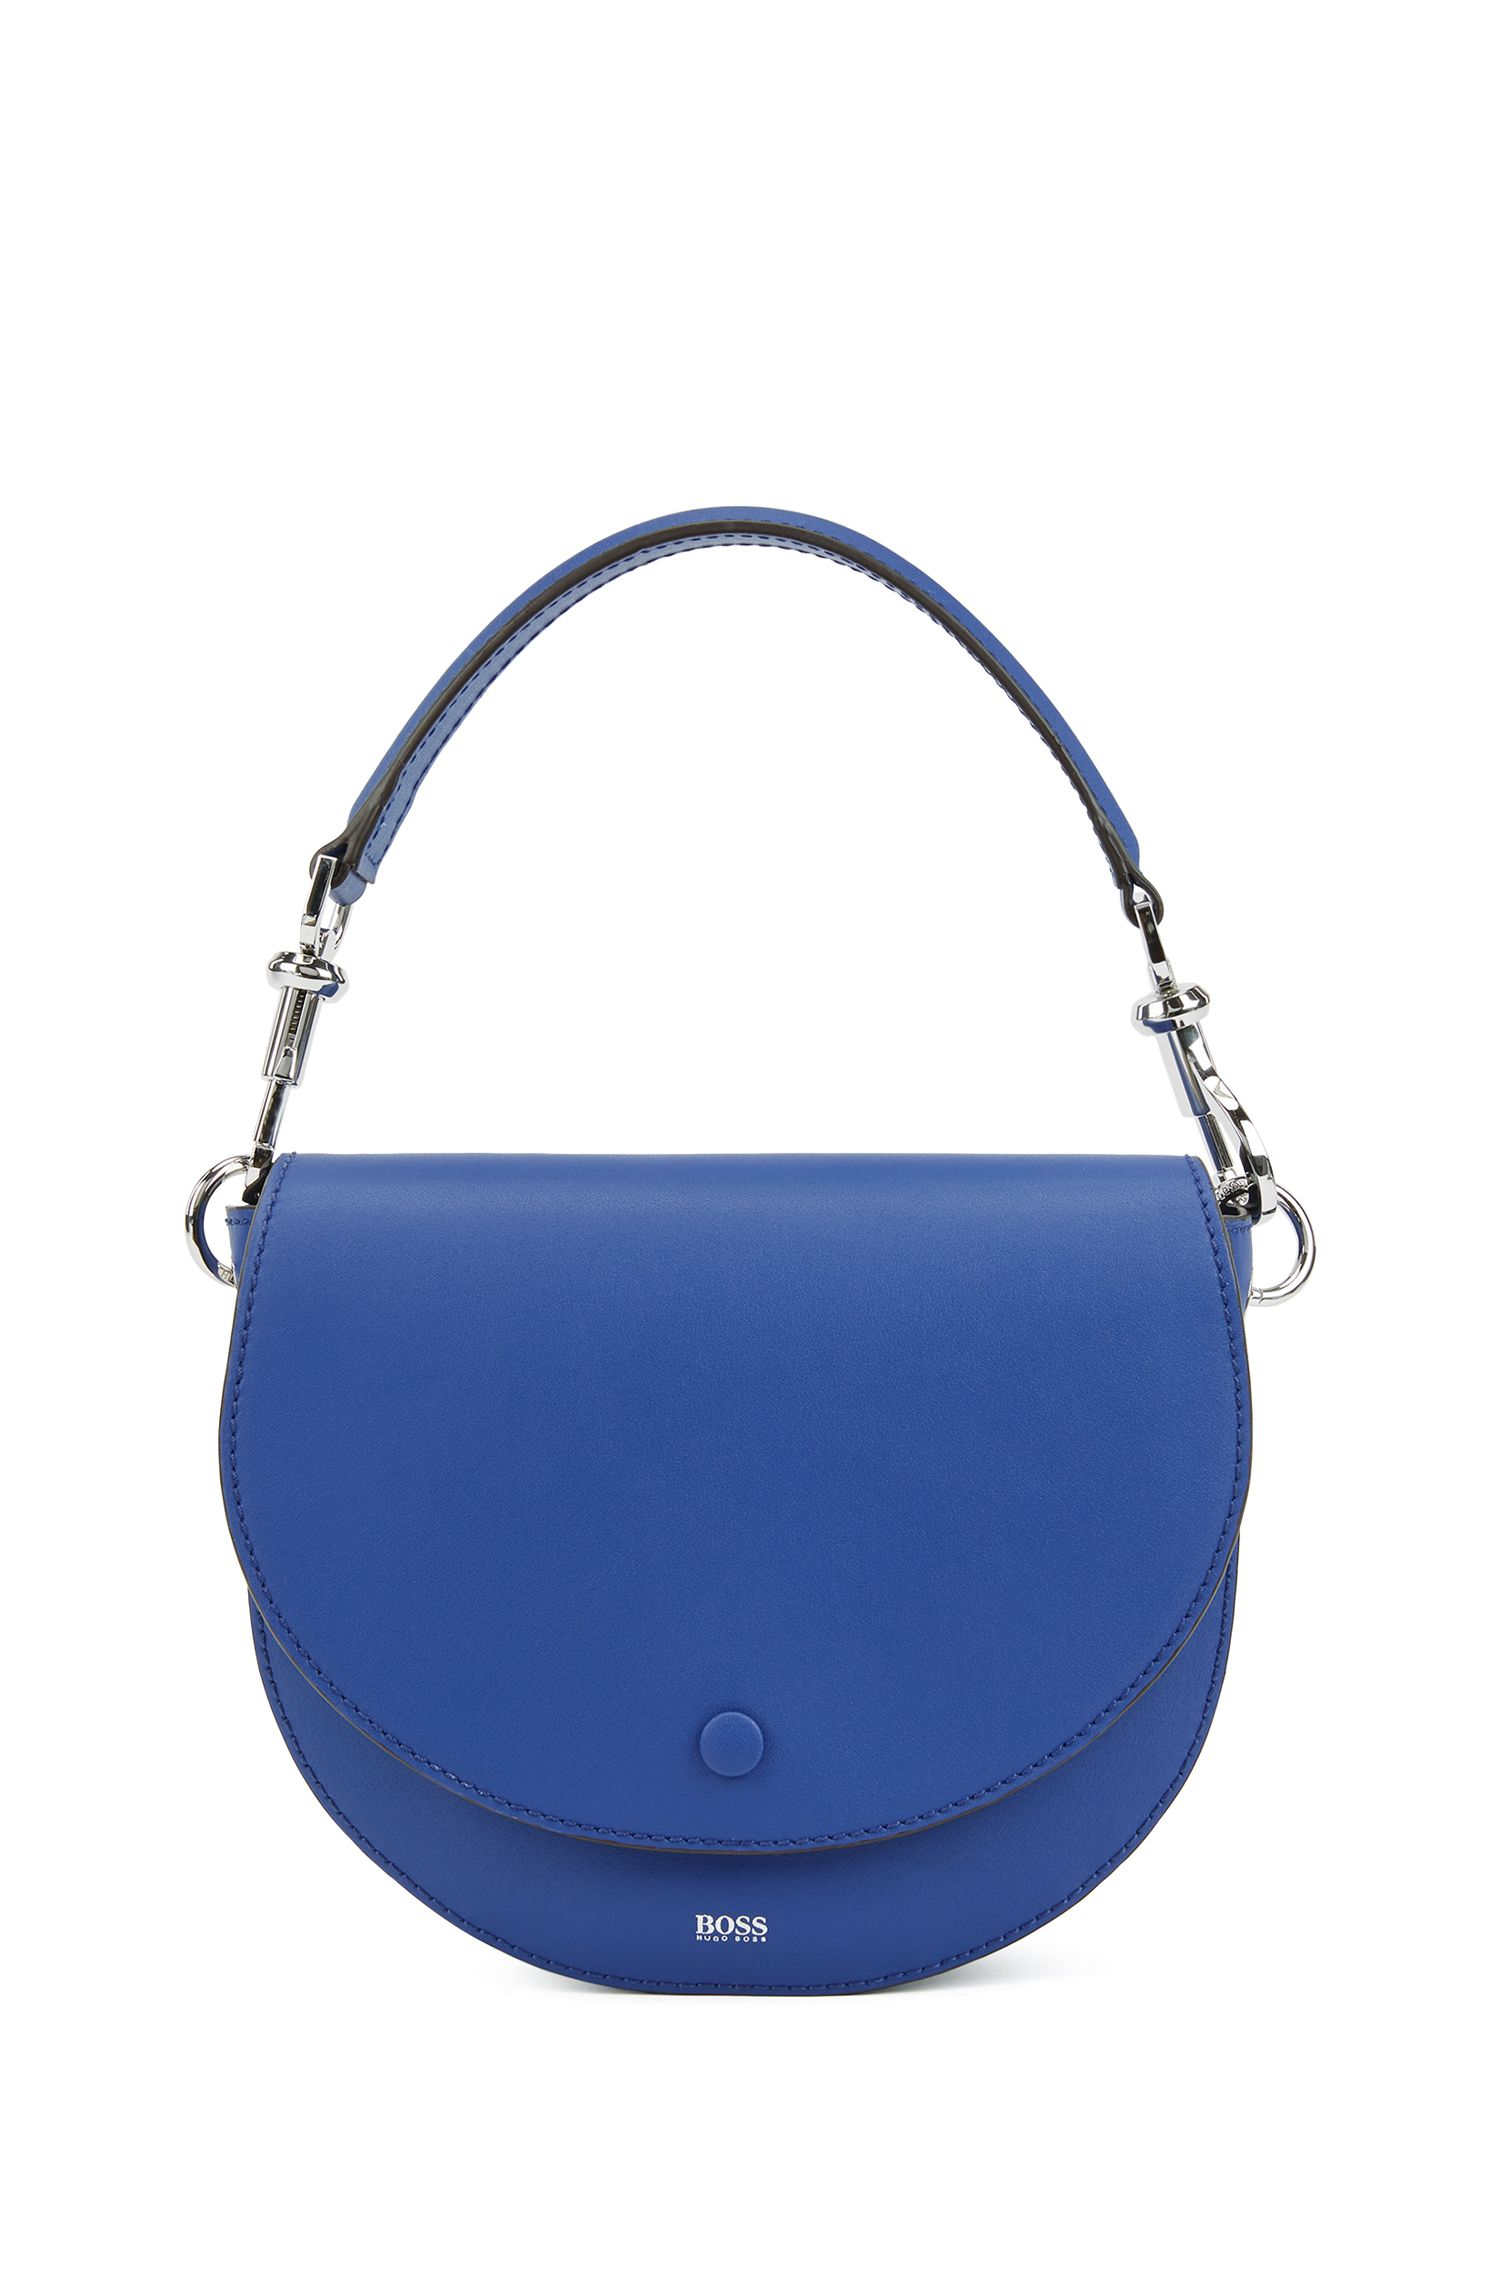 Borsa Saddle in pelle italiana con moschettone in metallo, Blu